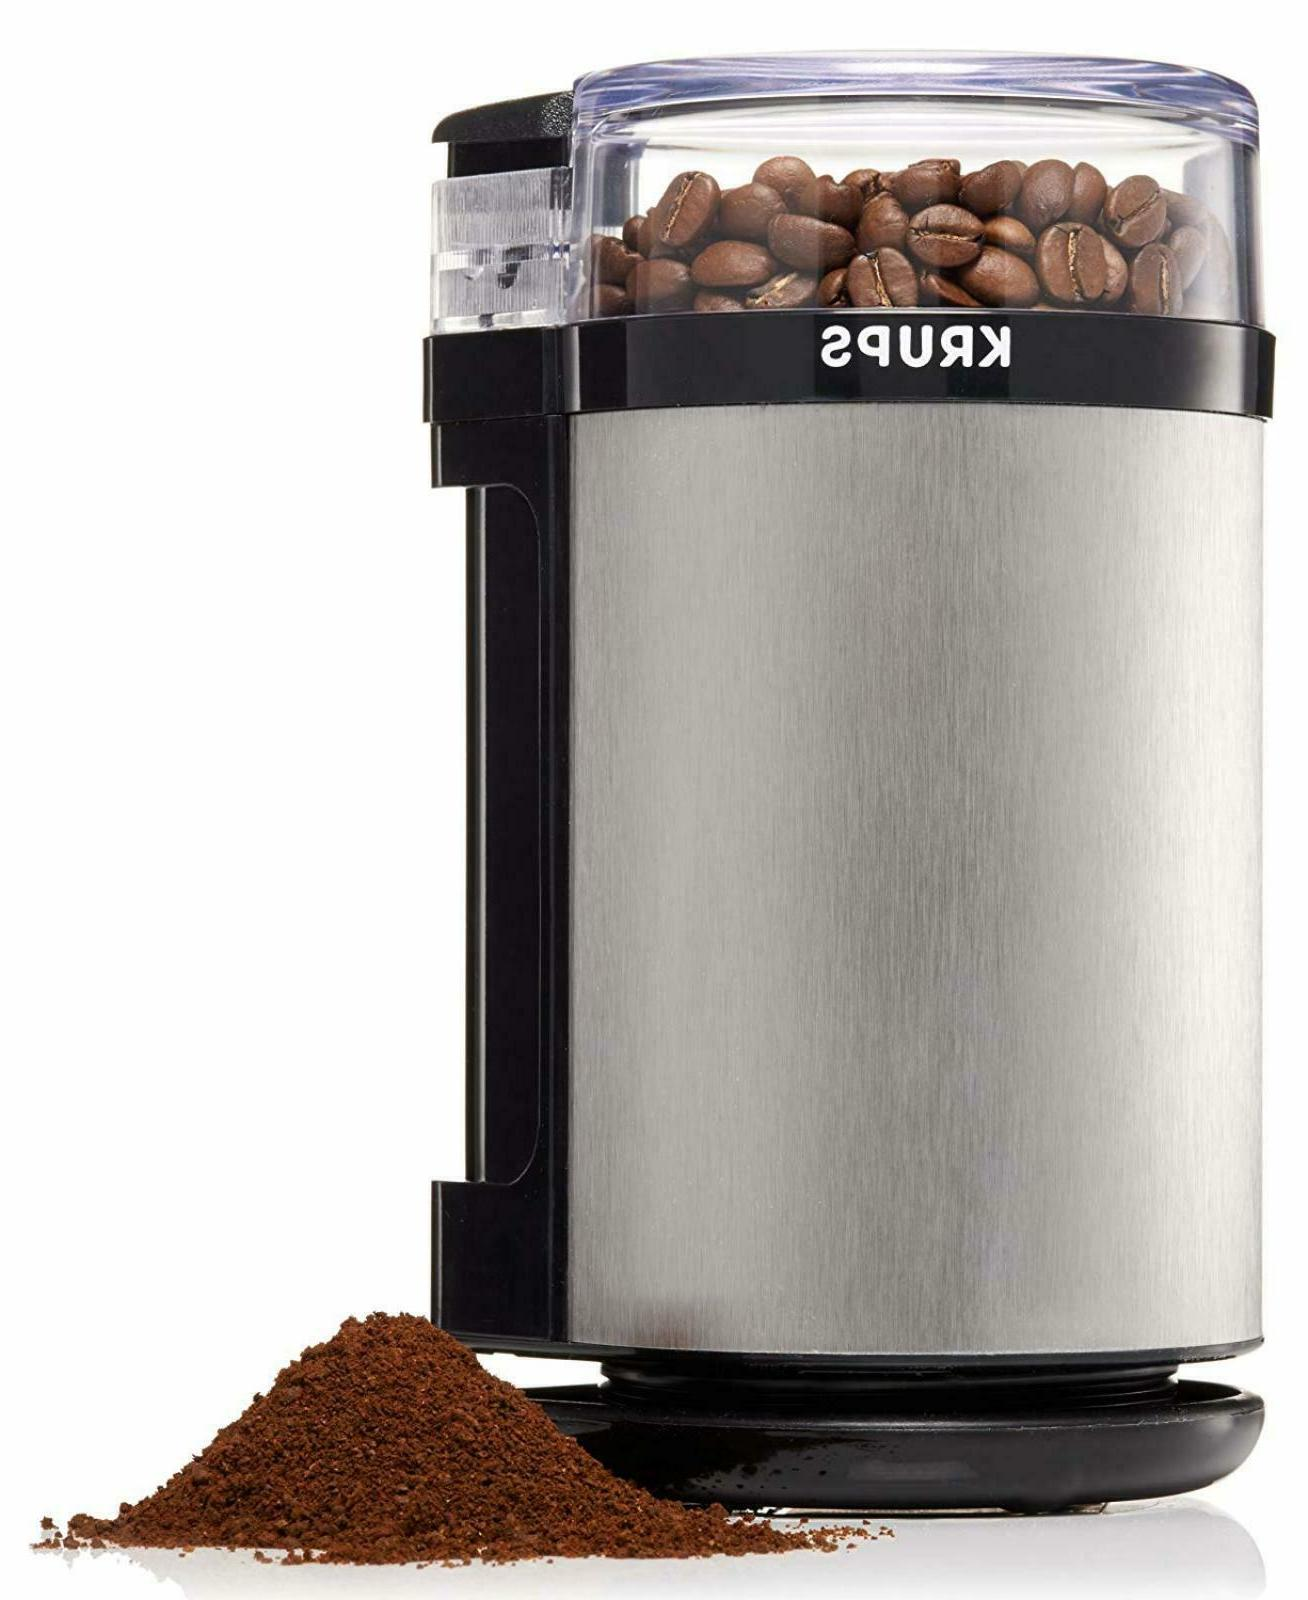 Spice Herb Coffee Electric Grinder Stainless Steel Safety Lo